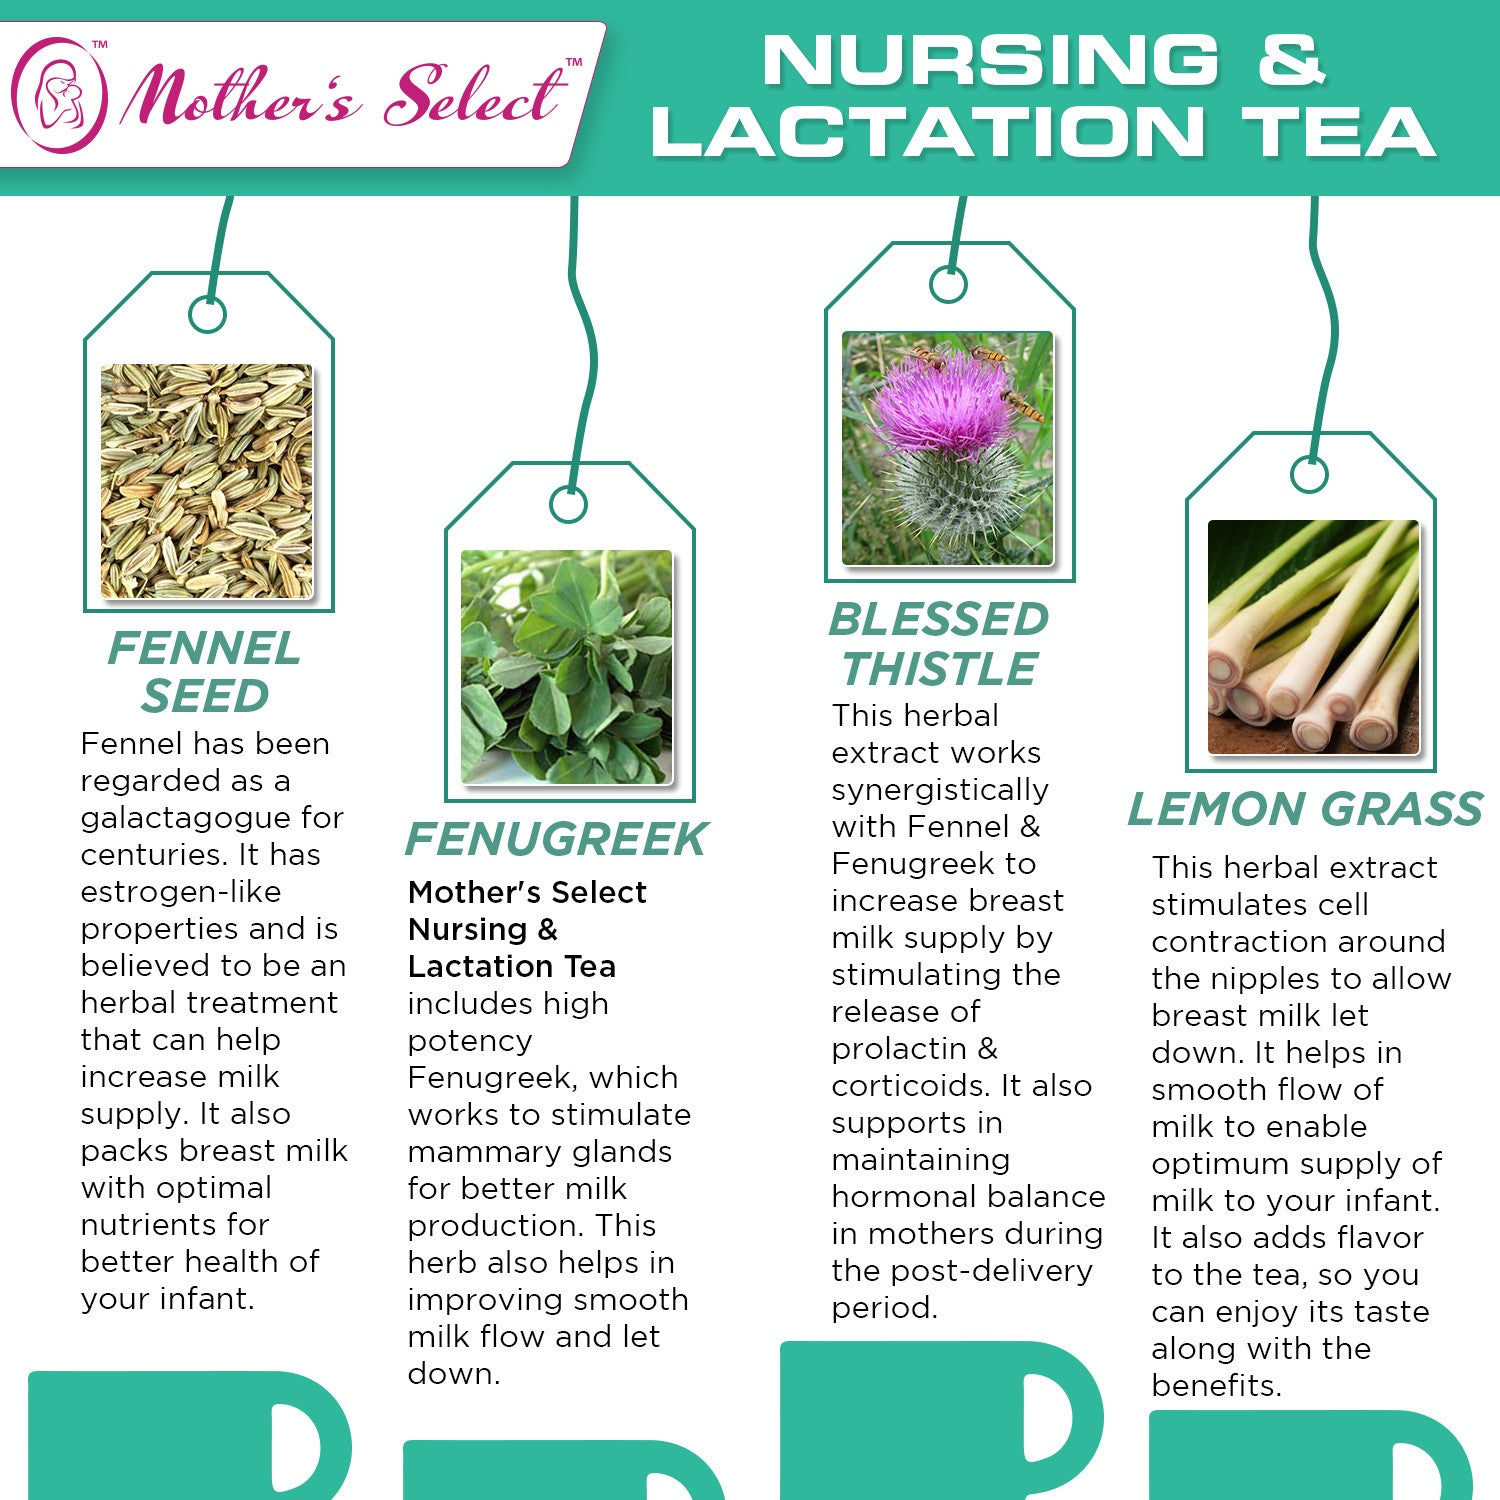 Seeds during lactation: benefit or harm